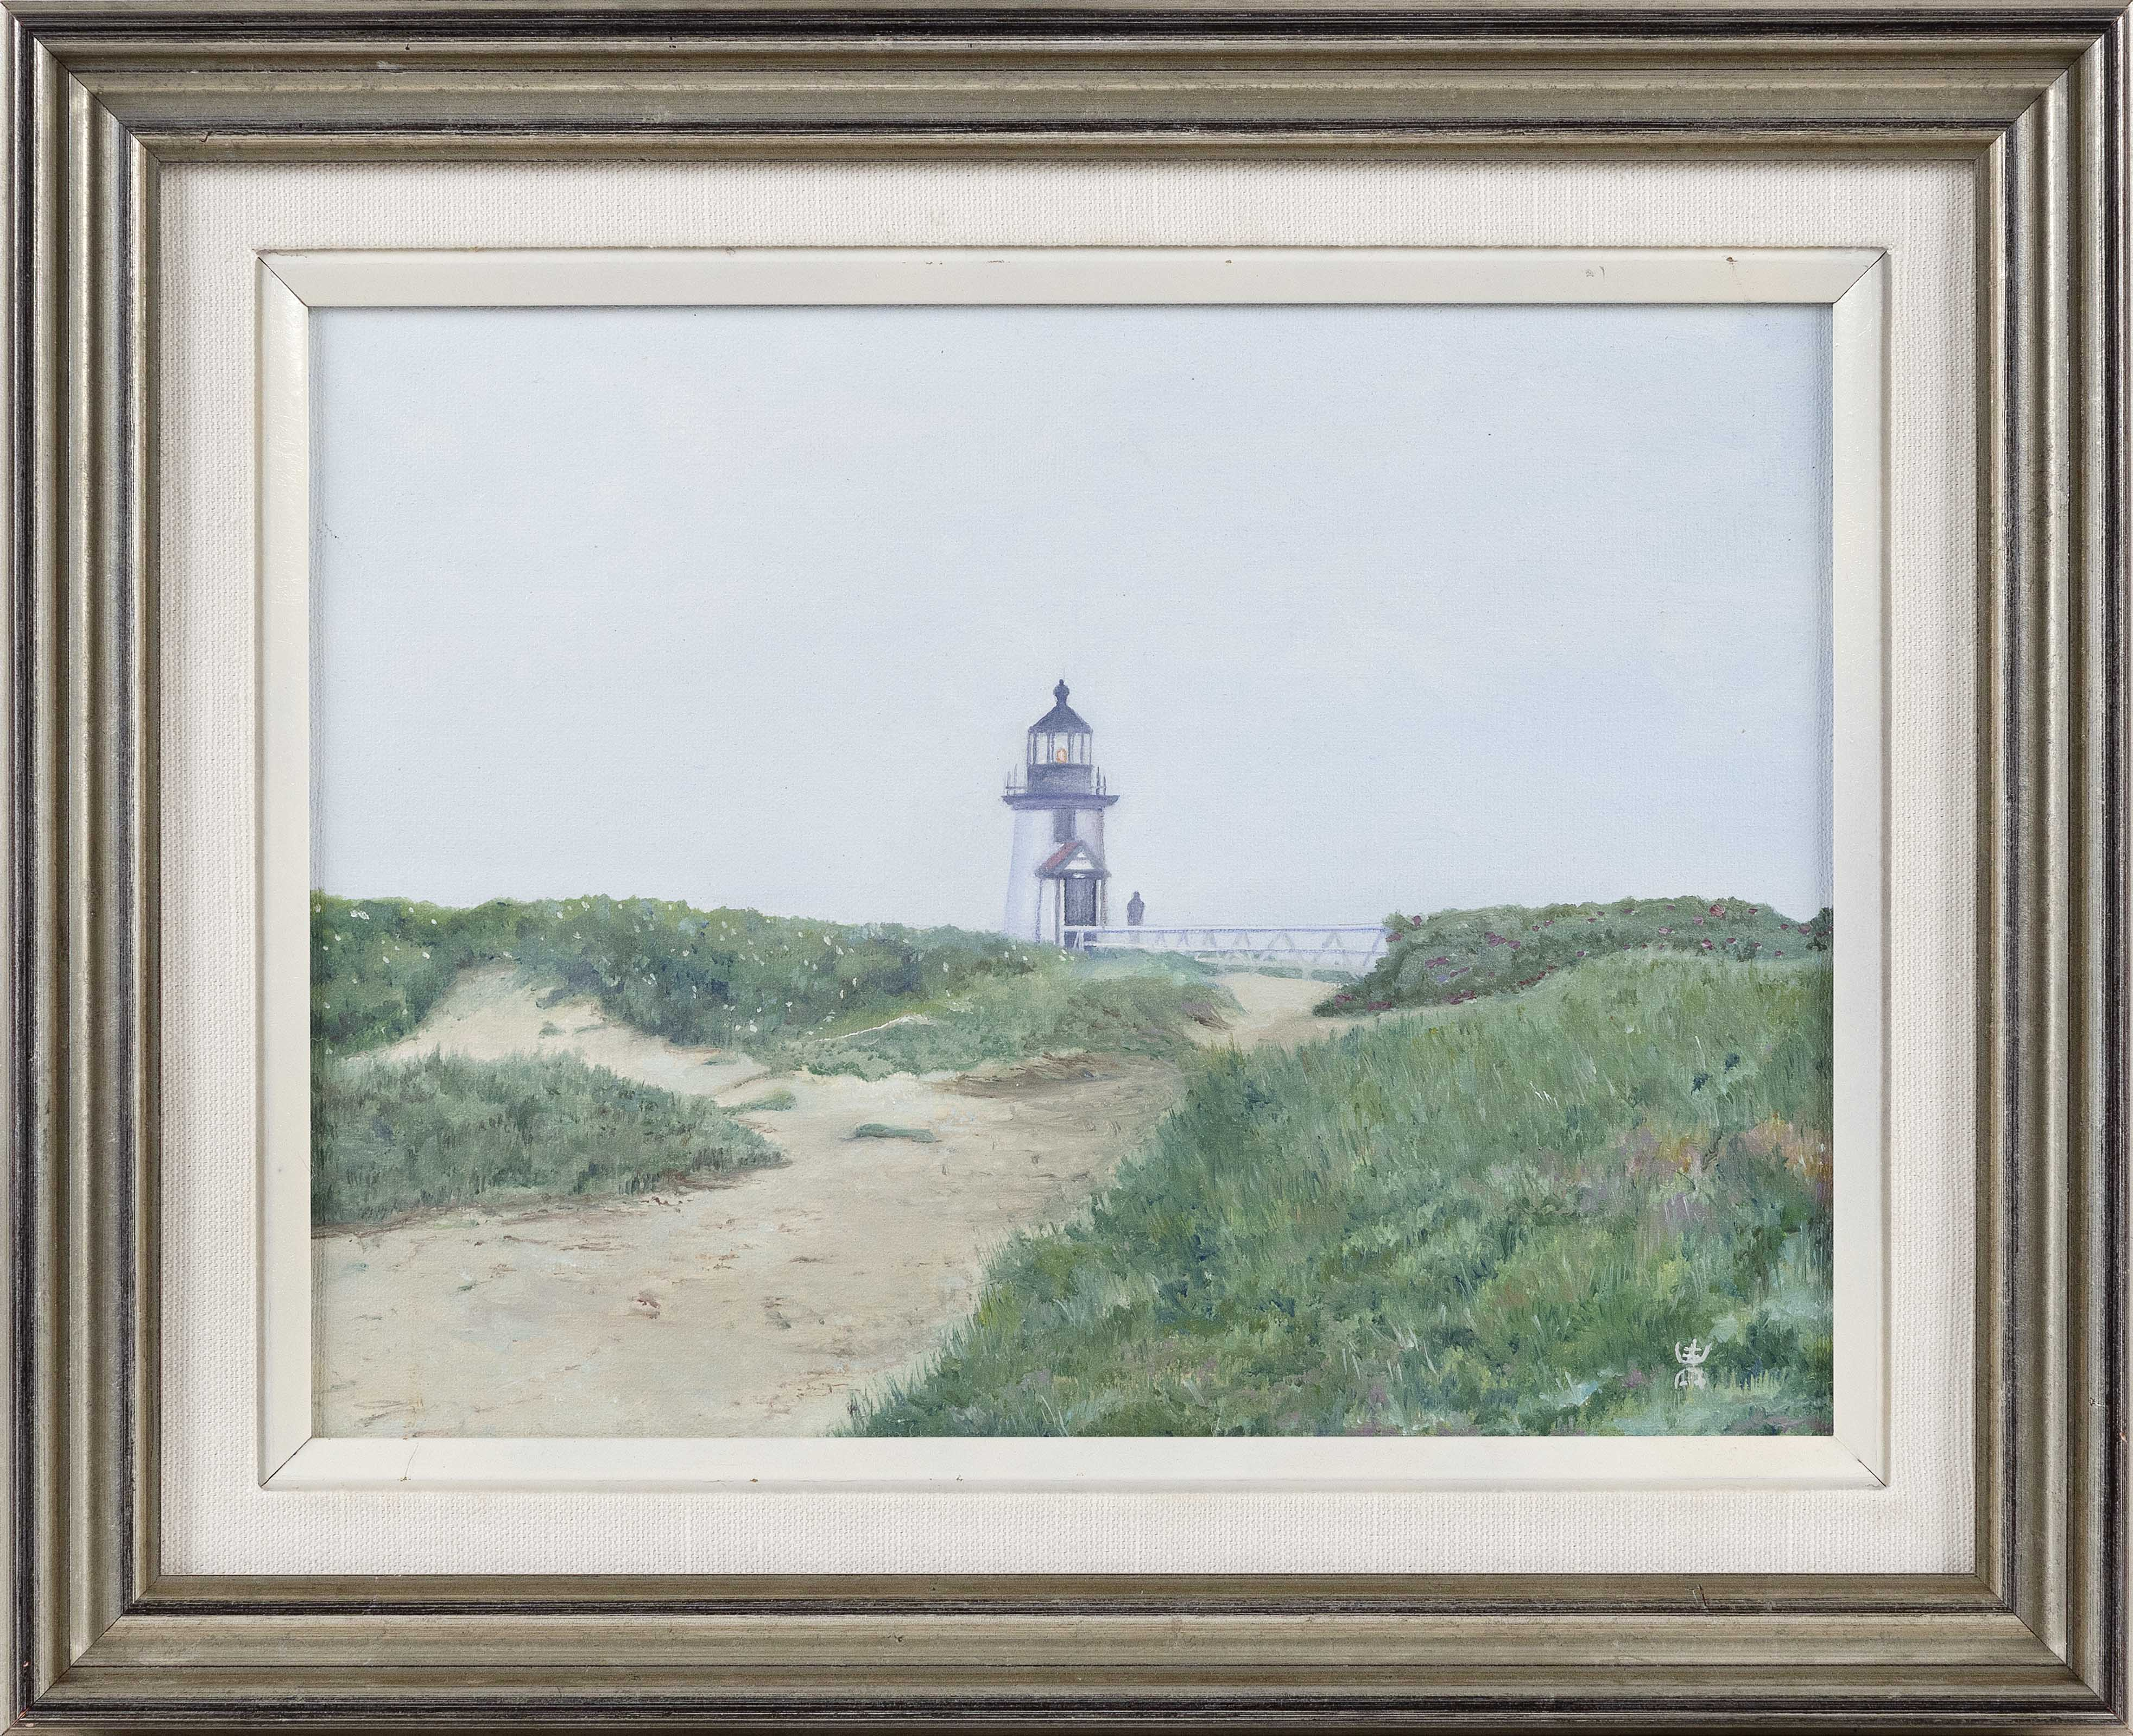 """KELLY MCFARLAND (America, Contemporary), """"Brant Point""""., Oil on canvas, 8"""" x 11"""". Framed 13"""" x 16""""."""